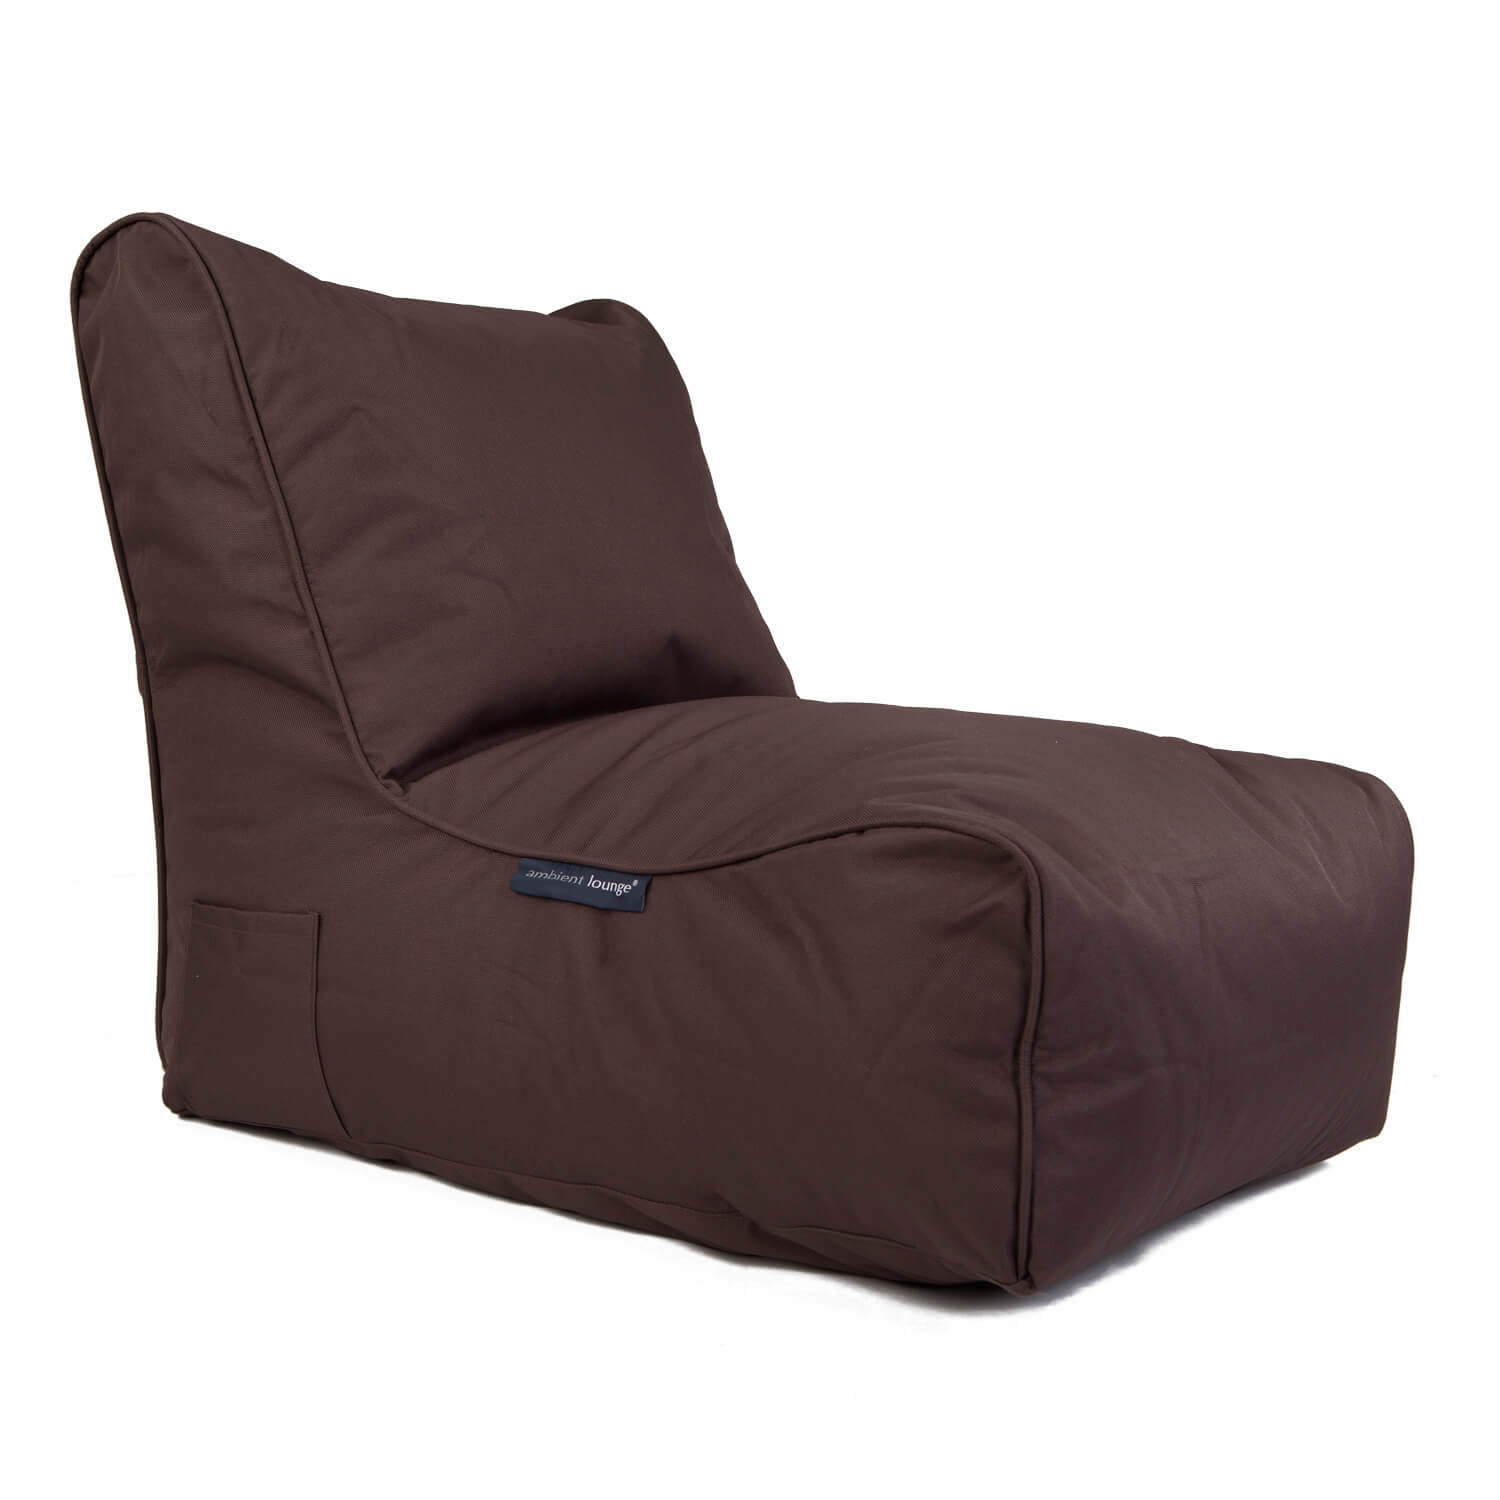 Evolution Sofa Mud Cake Chocolate Bean Bags Australia